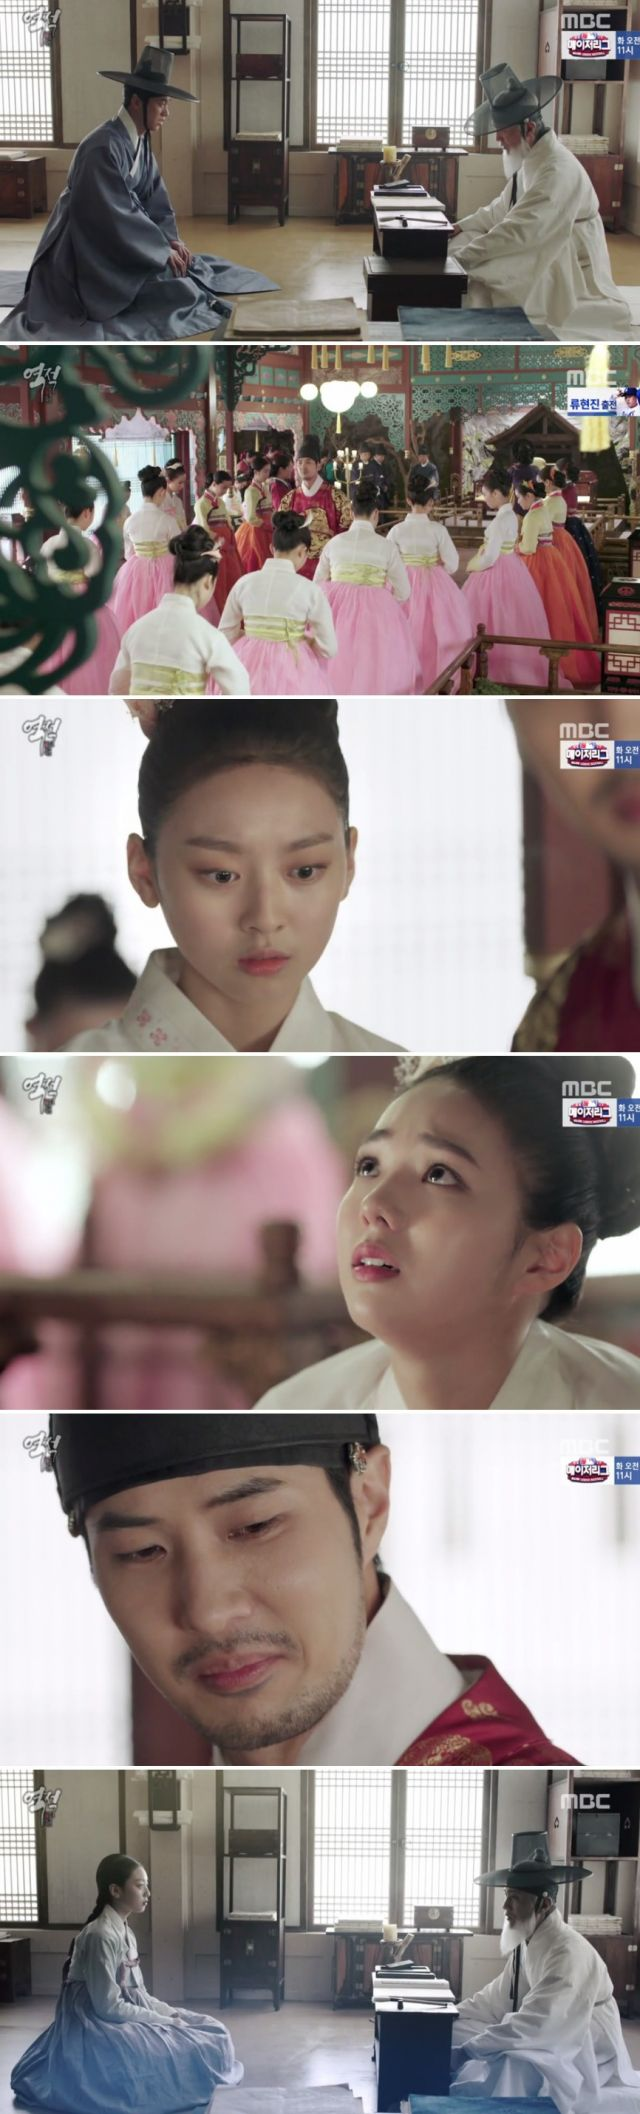 [Spoiler] Added episode 25 captures for the Korean drama 'Rebel: Thief Who Stole the People'